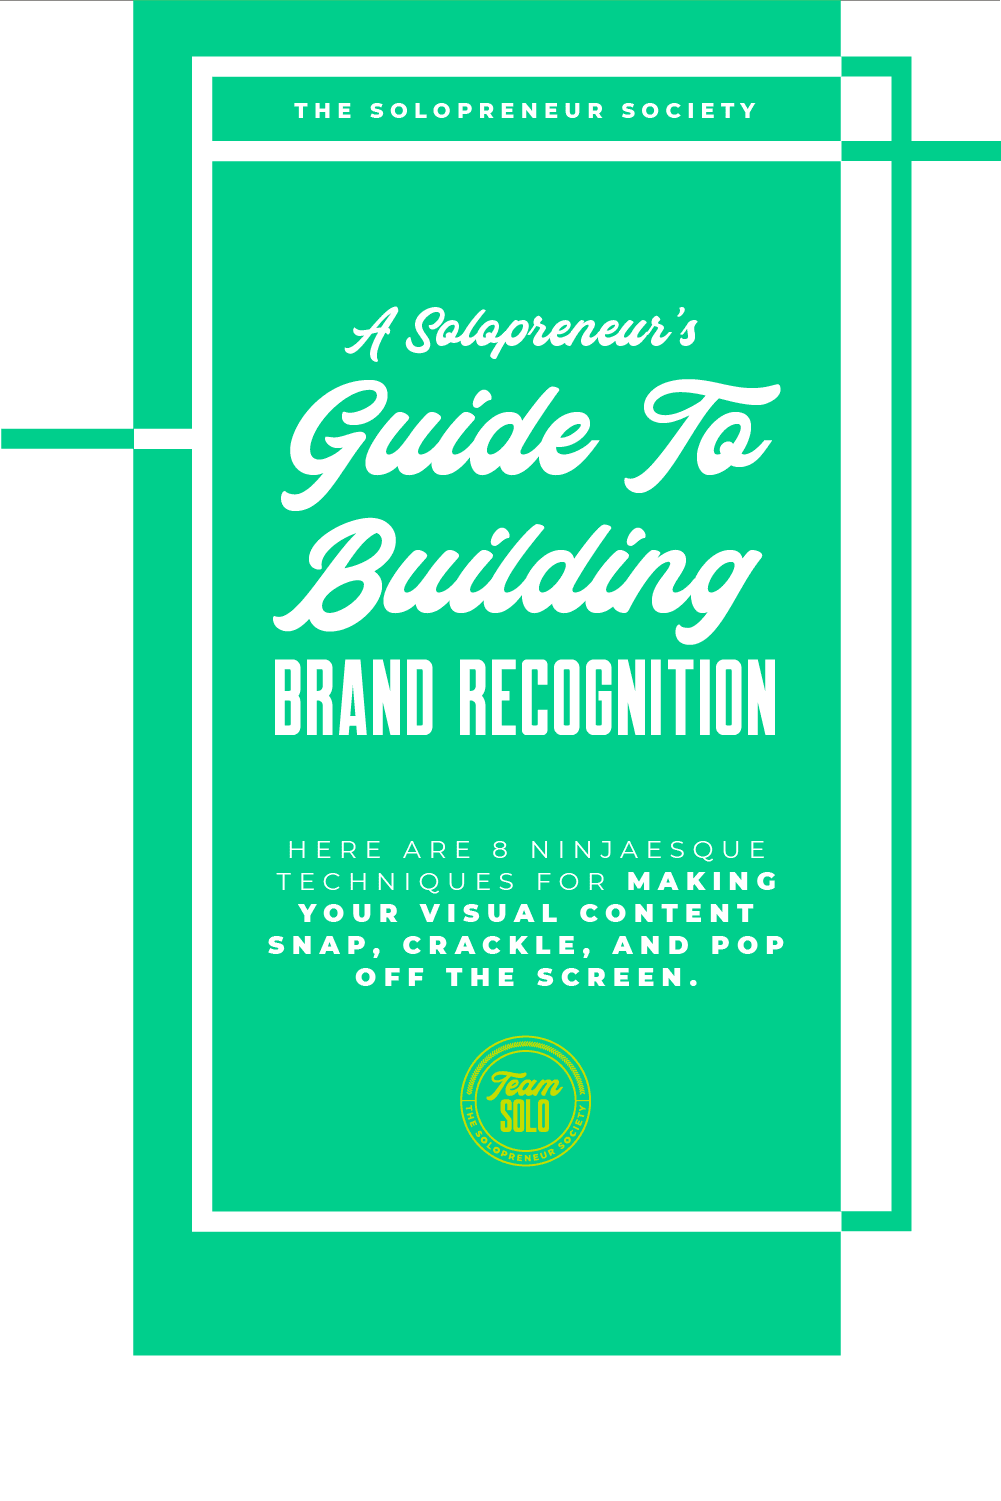 8 ways to build brand recognition with your images